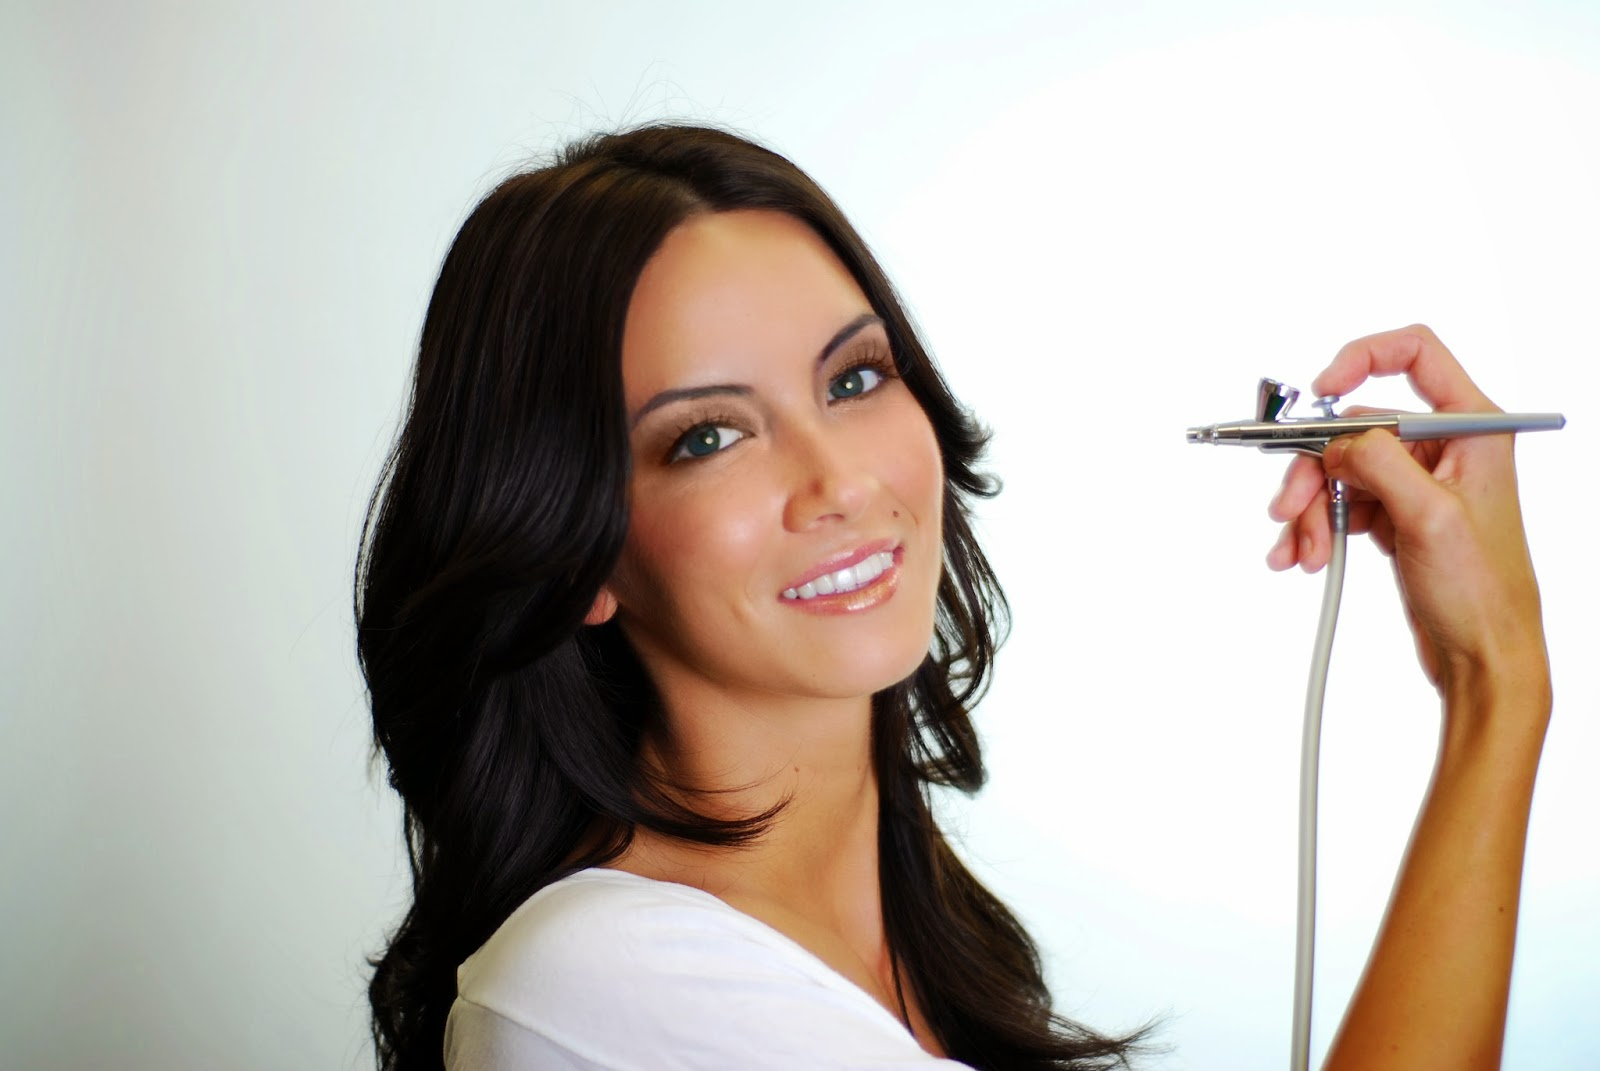 Airbrush makeup kits have become much more affordable in recent years putting them firmly within the reach of many people from professional makeup artists ...